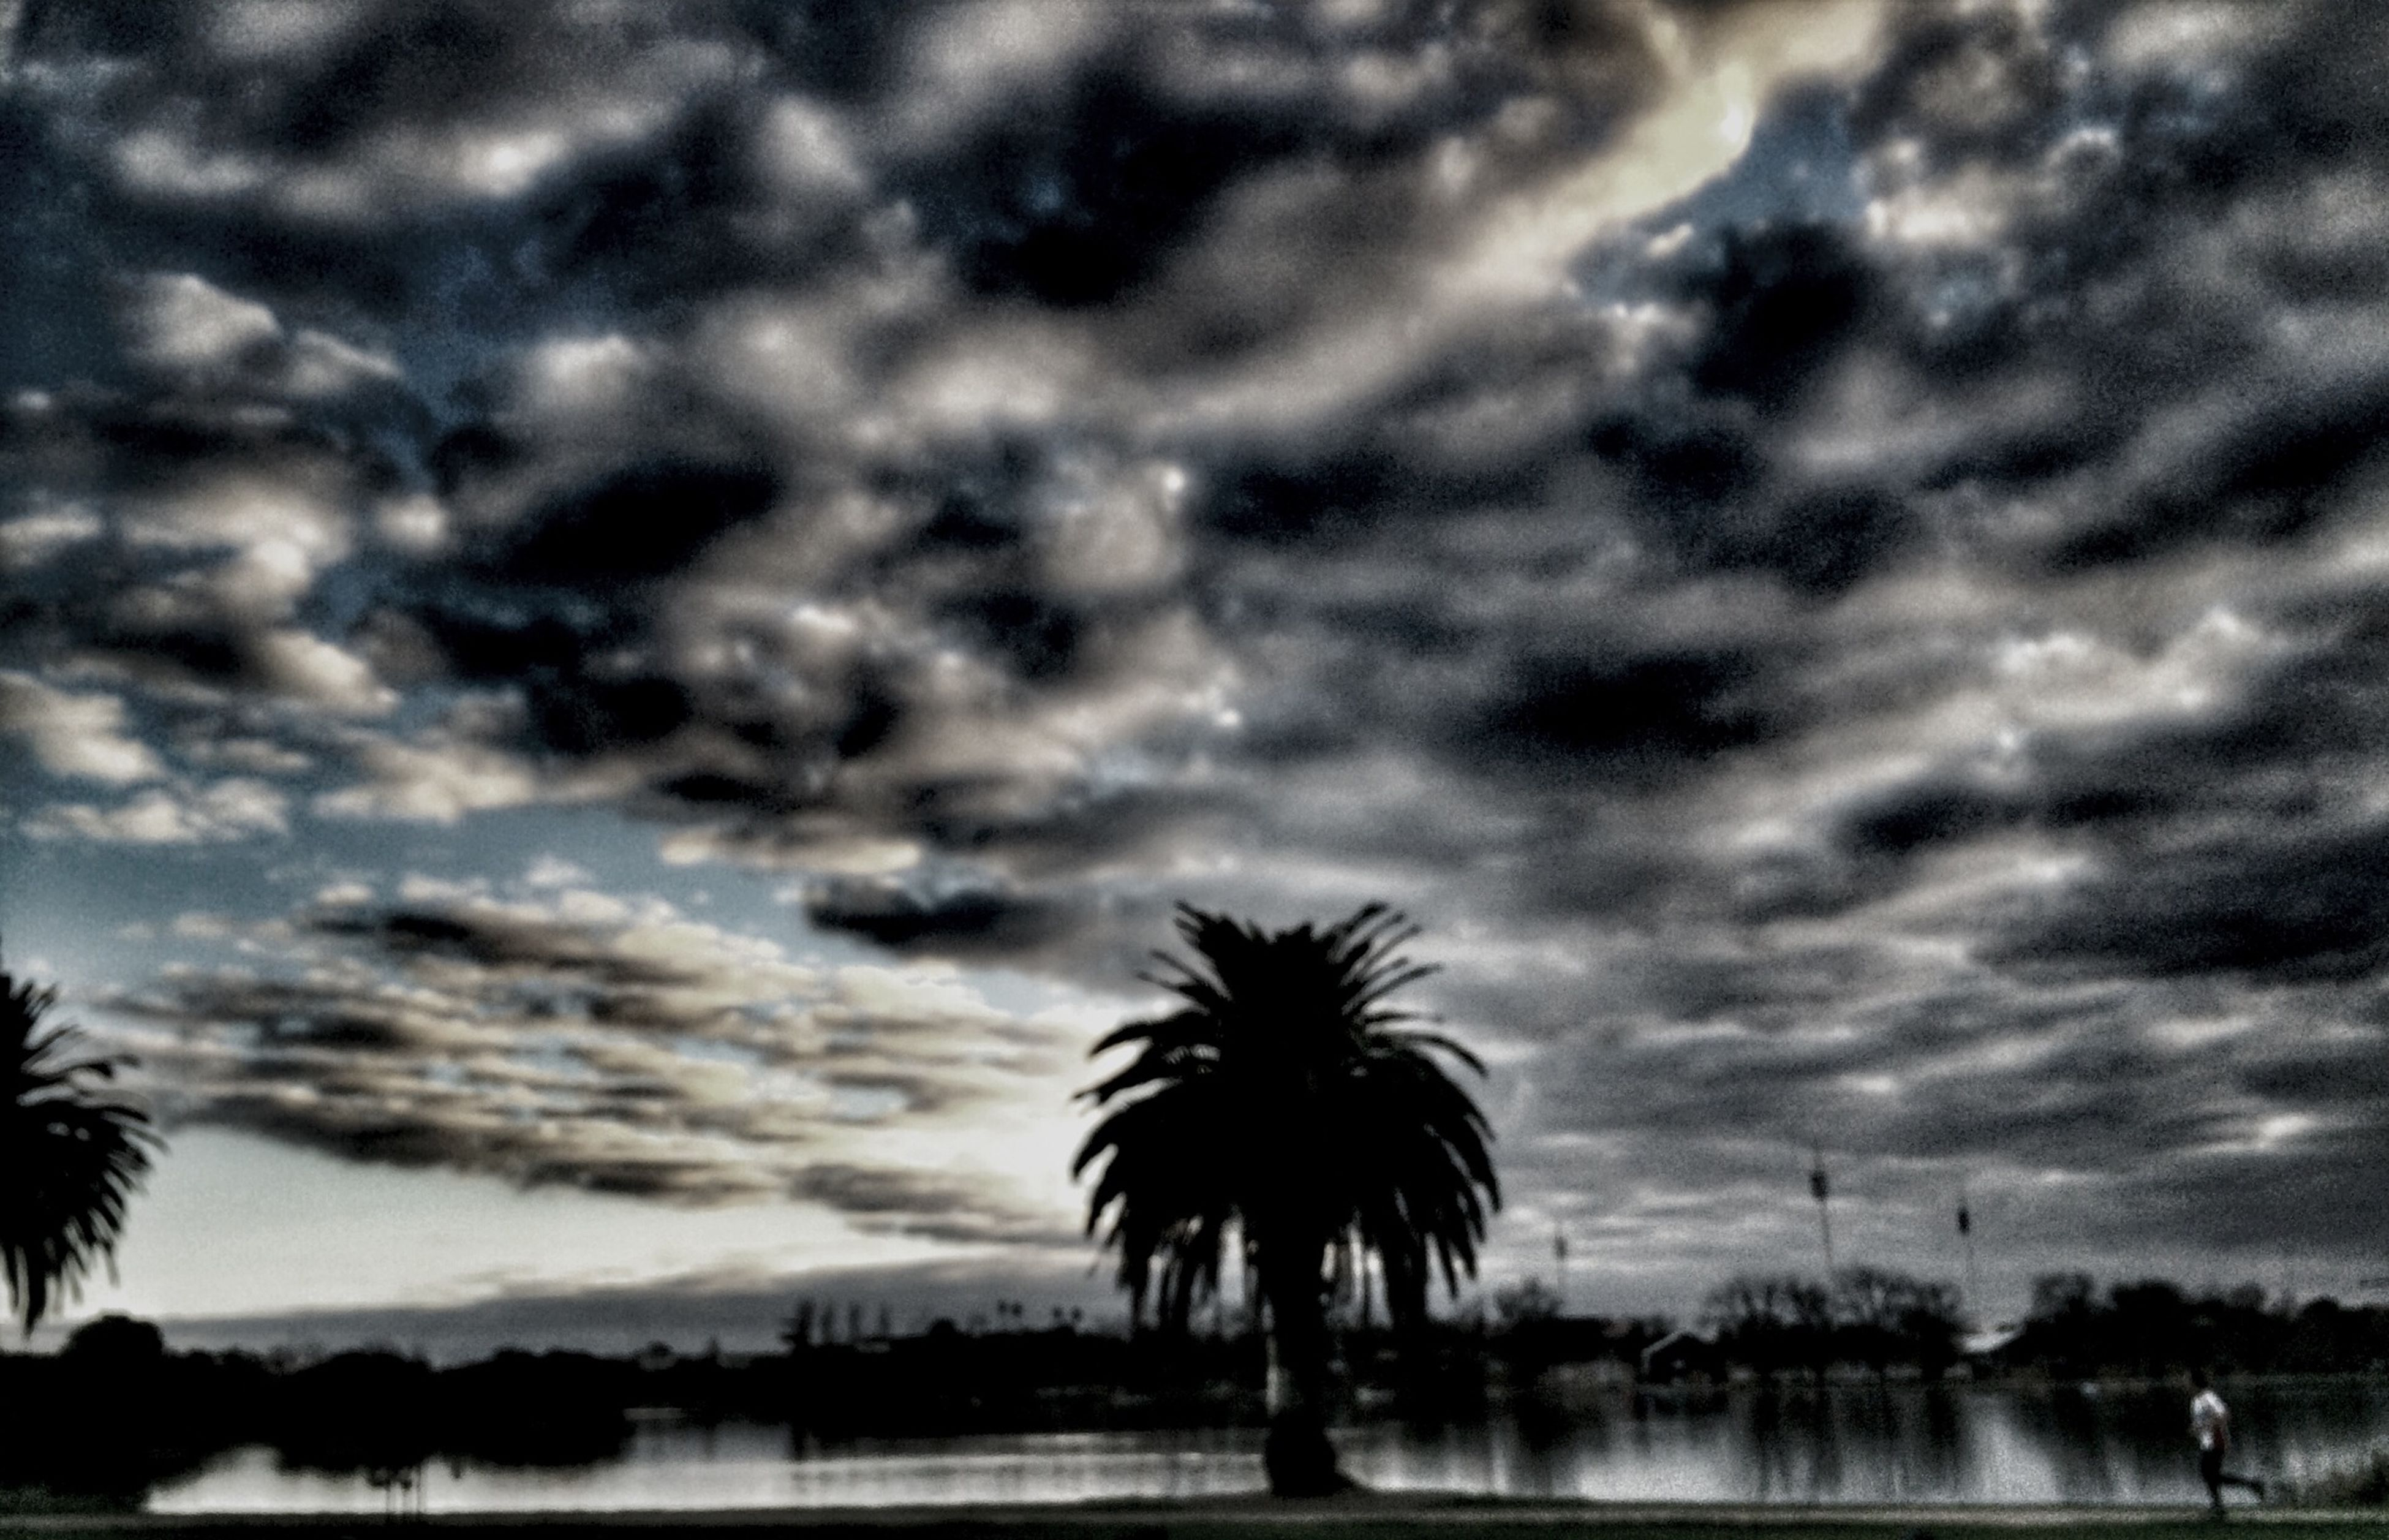 sky, water, cloud - sky, palm tree, silhouette, cloudy, reflection, tranquil scene, tree, tranquility, scenics, sunset, beauty in nature, weather, nature, lake, cloud, waterfront, overcast, dusk